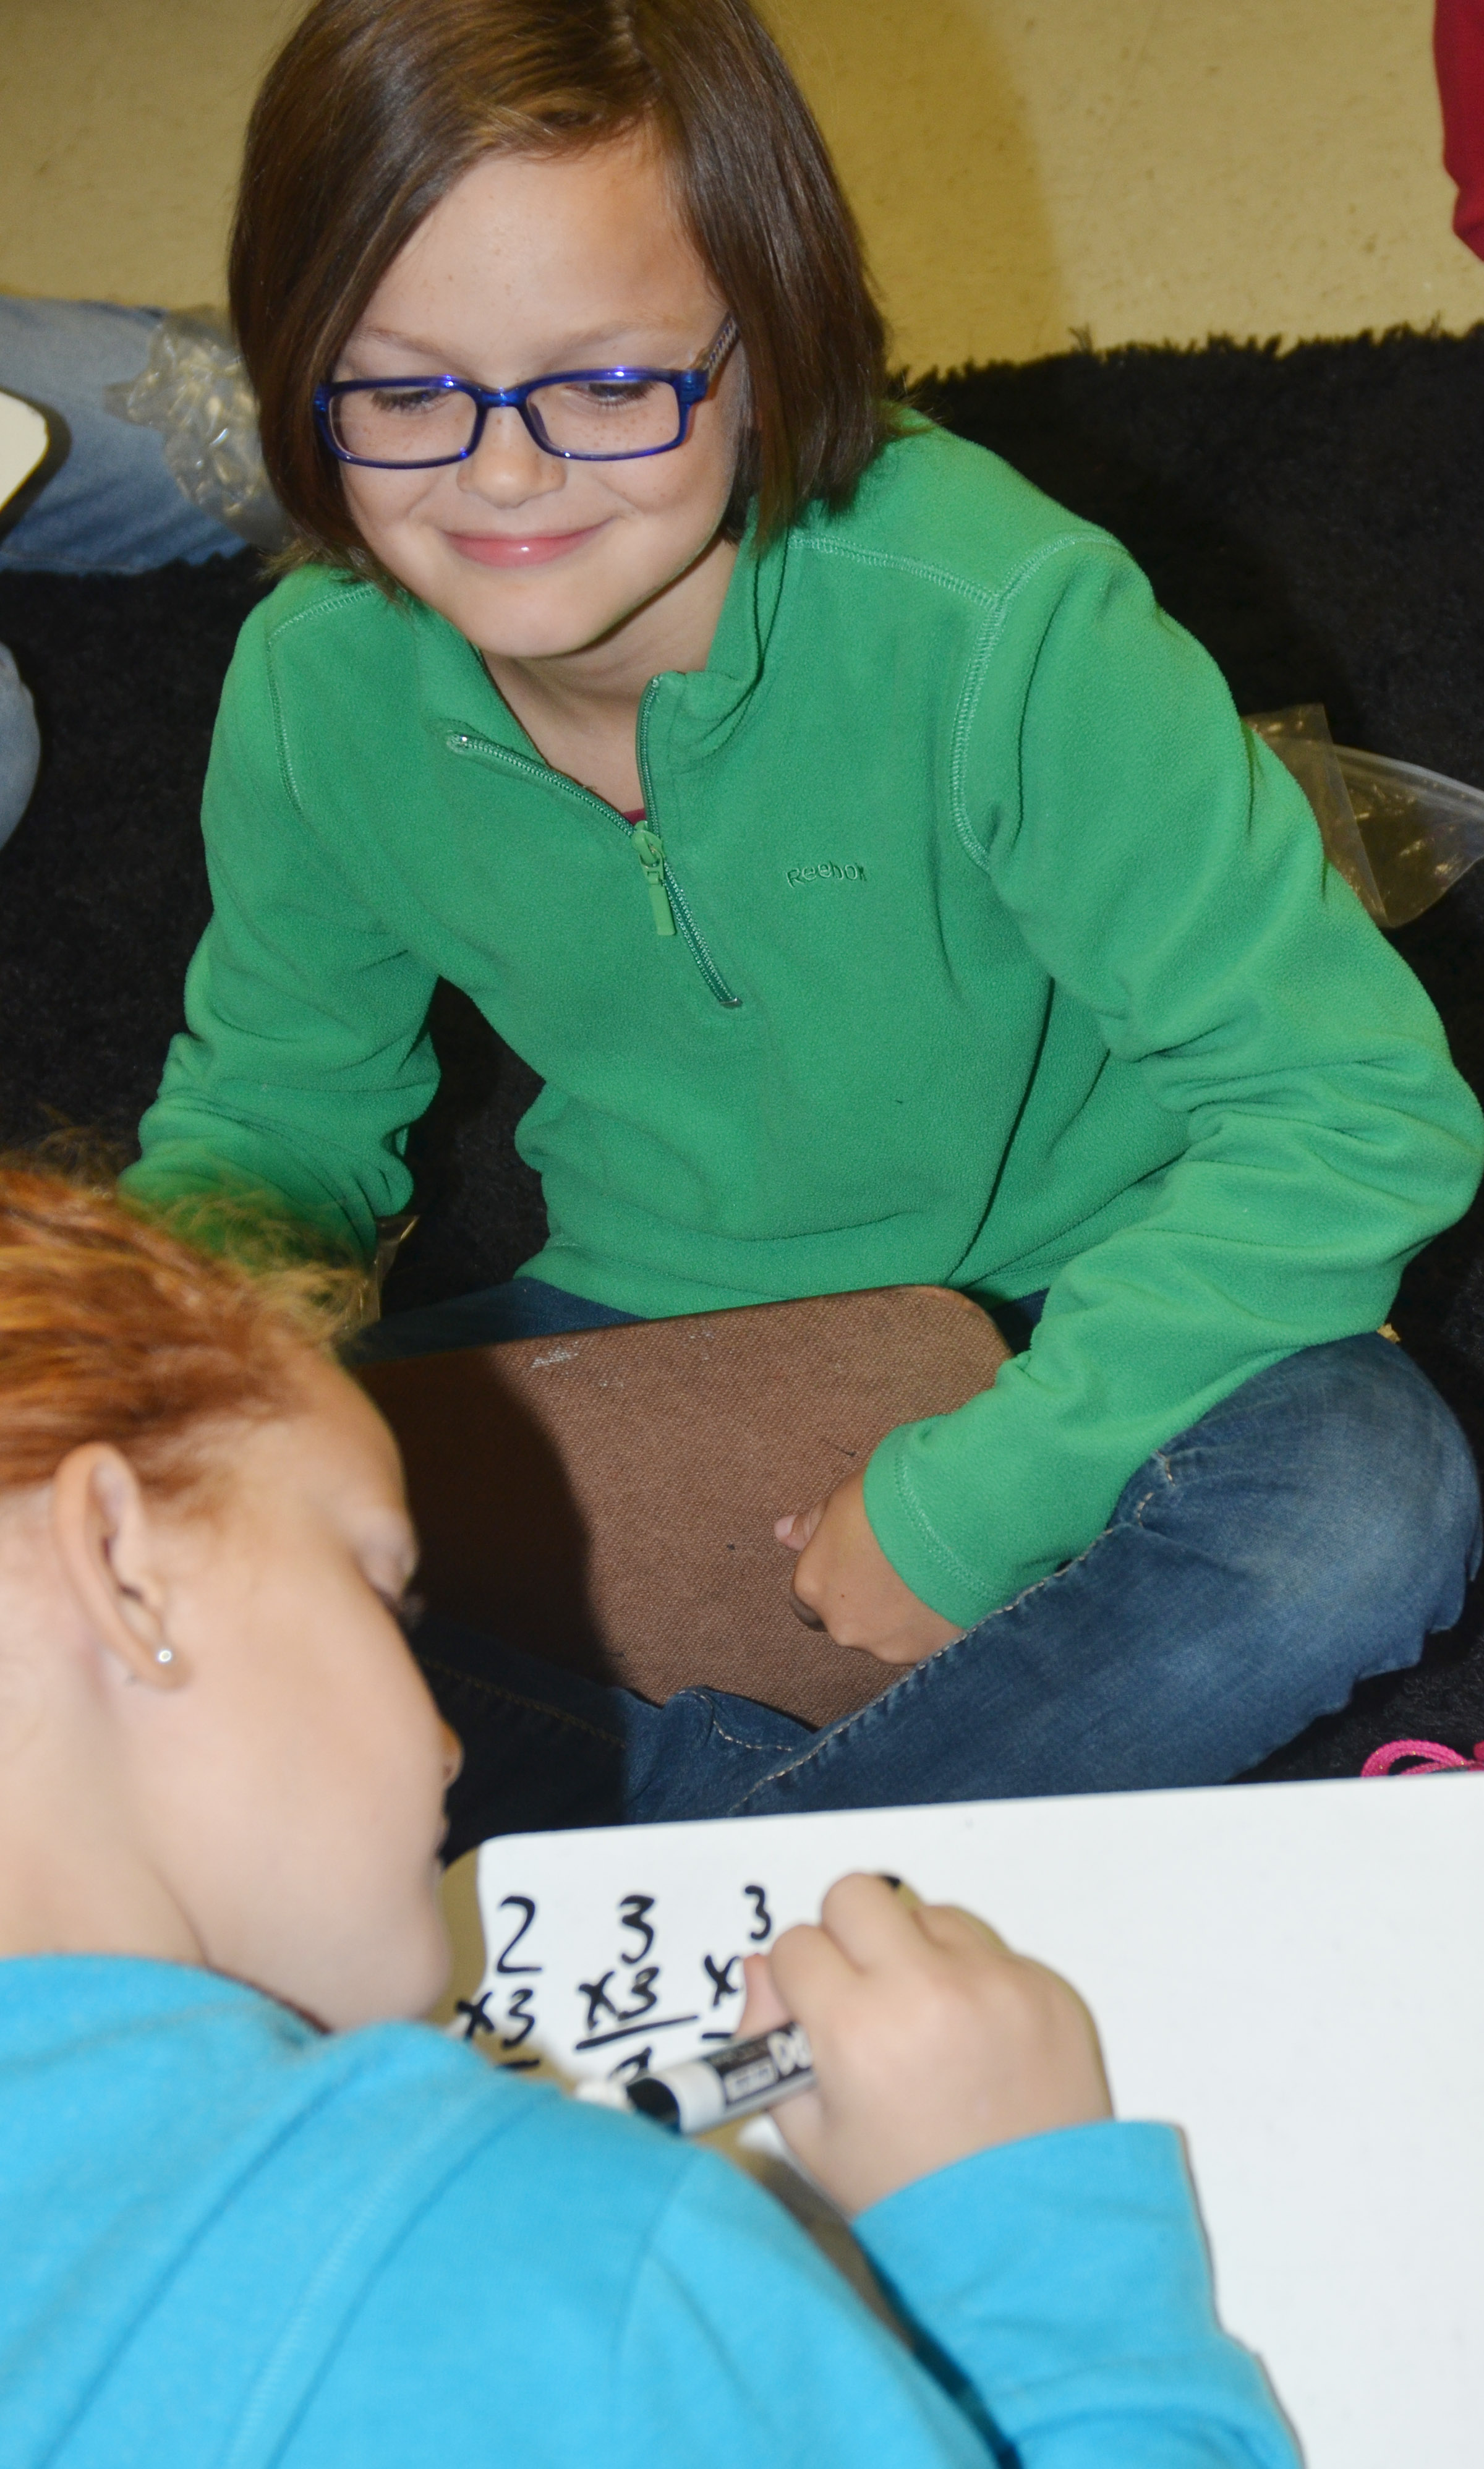 CES third-grader KayLee Lamer smiles as she works with classmate Analeigh Foster to answer a multiplication problem.